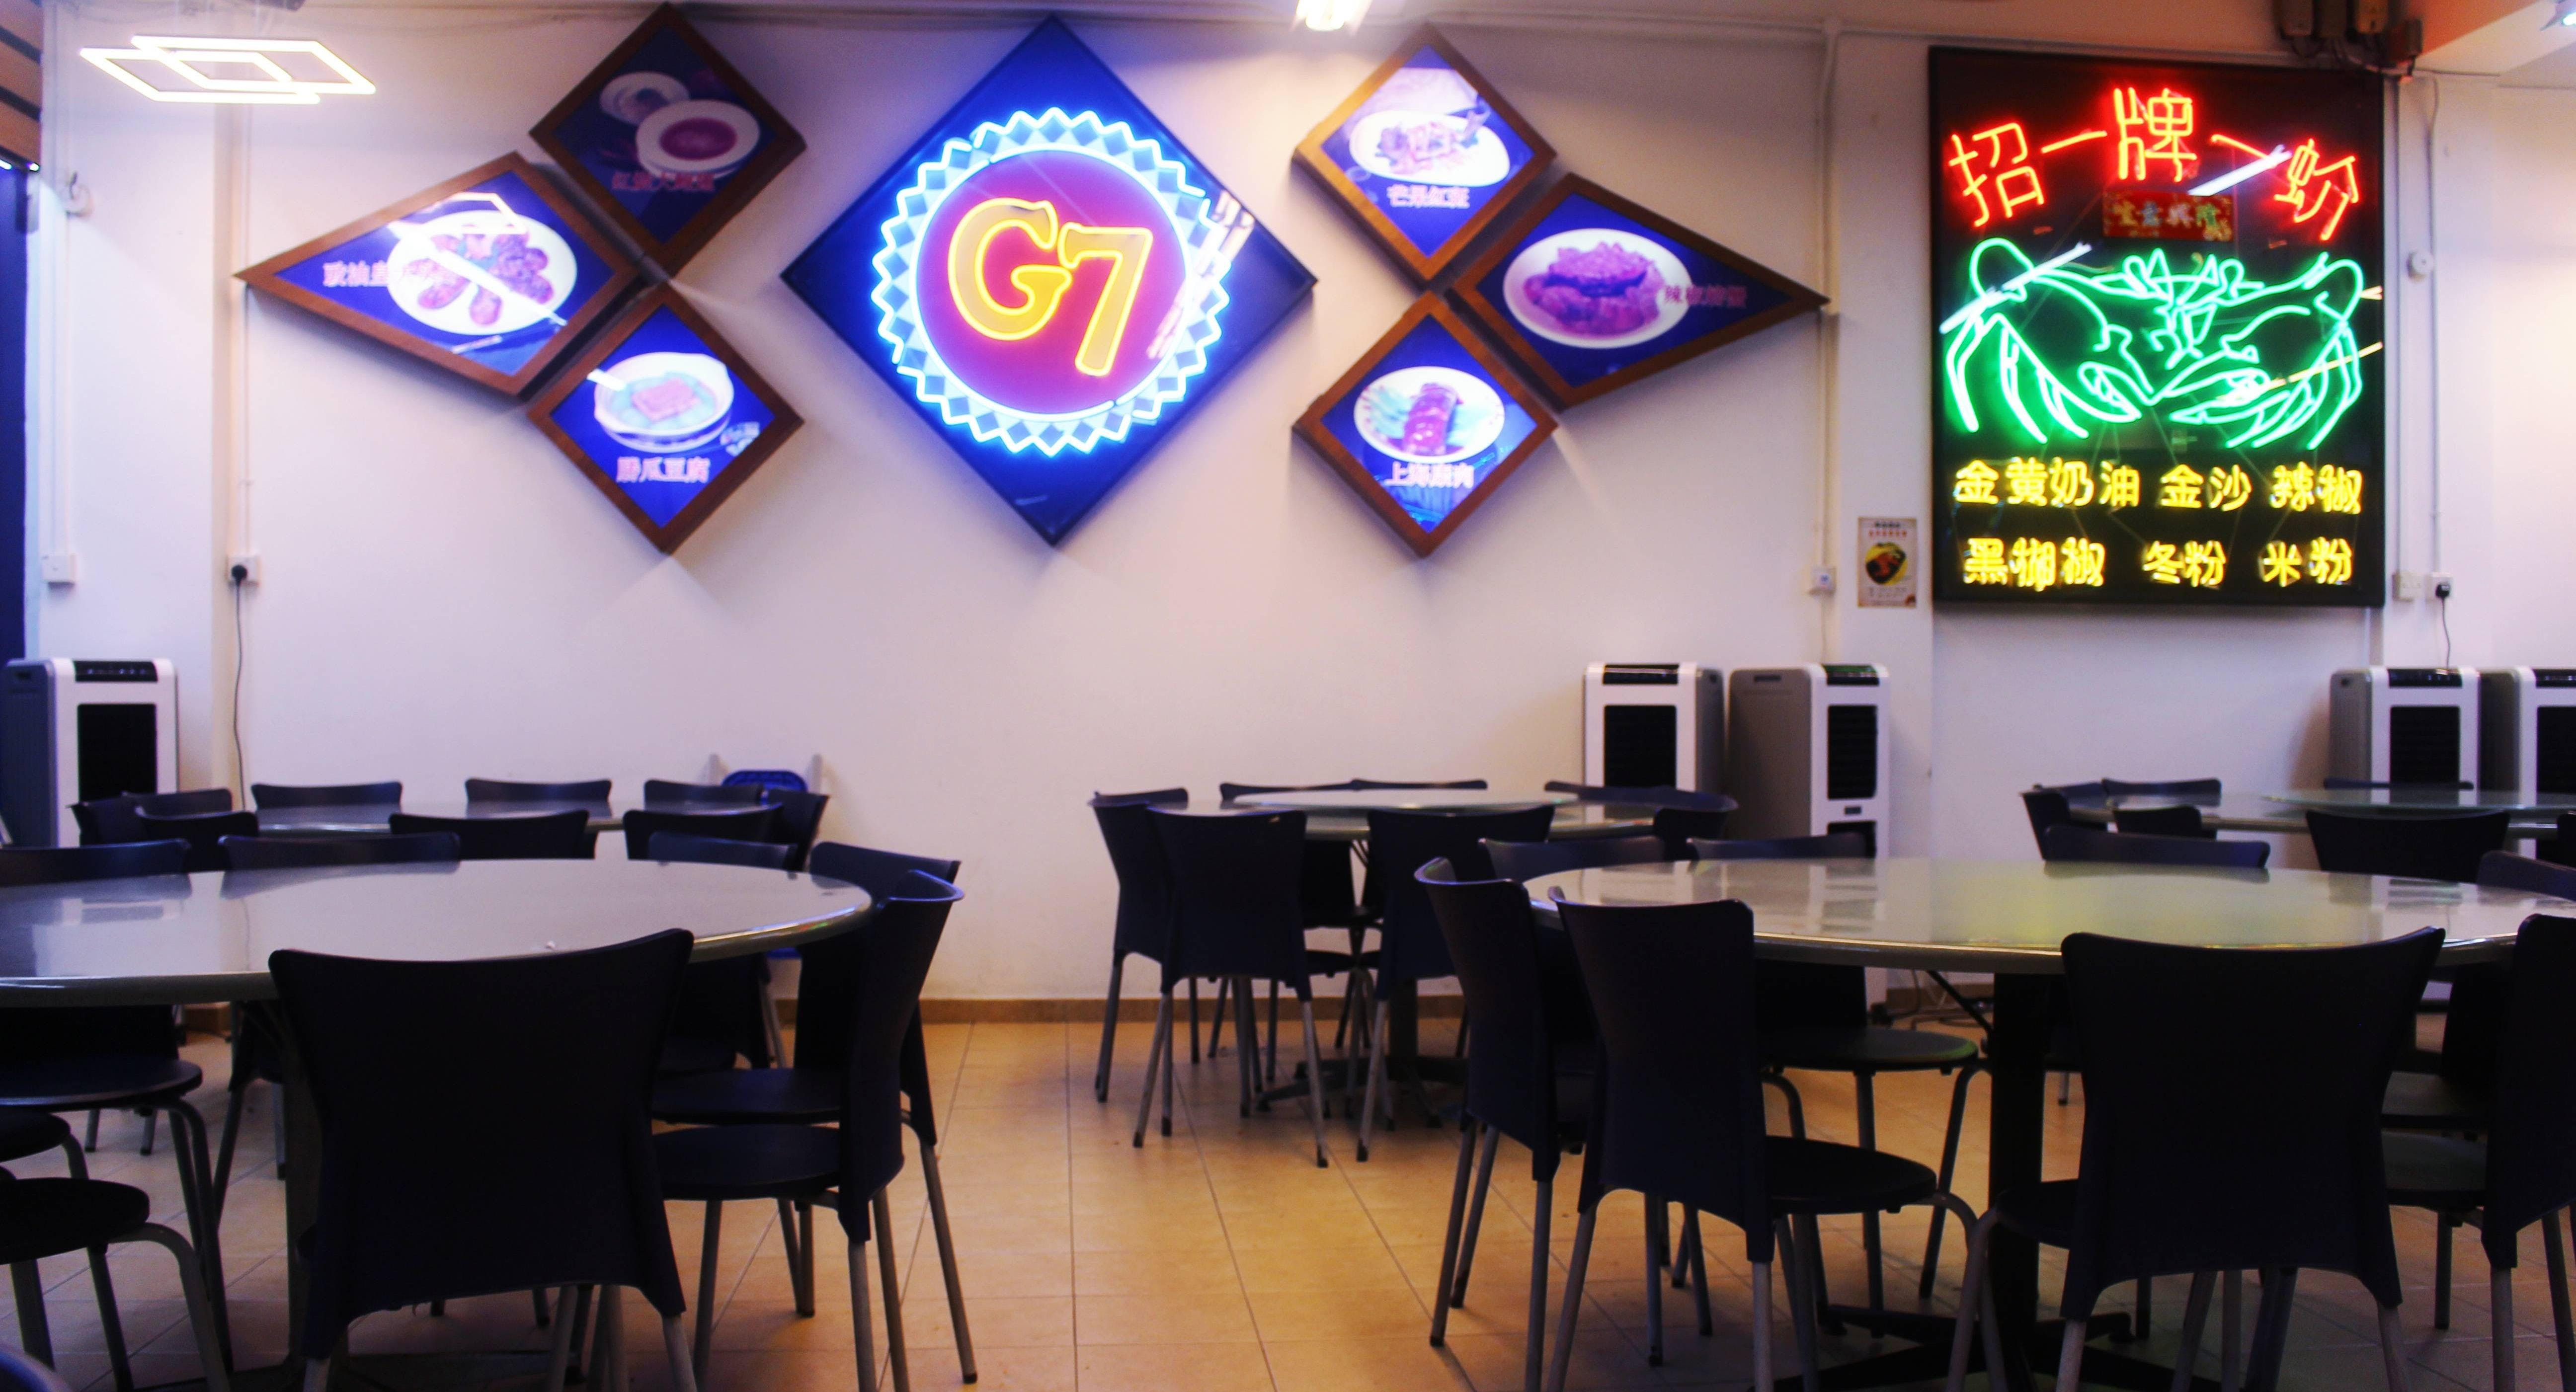 G7 Sinma Live Seafood Singapore image 2